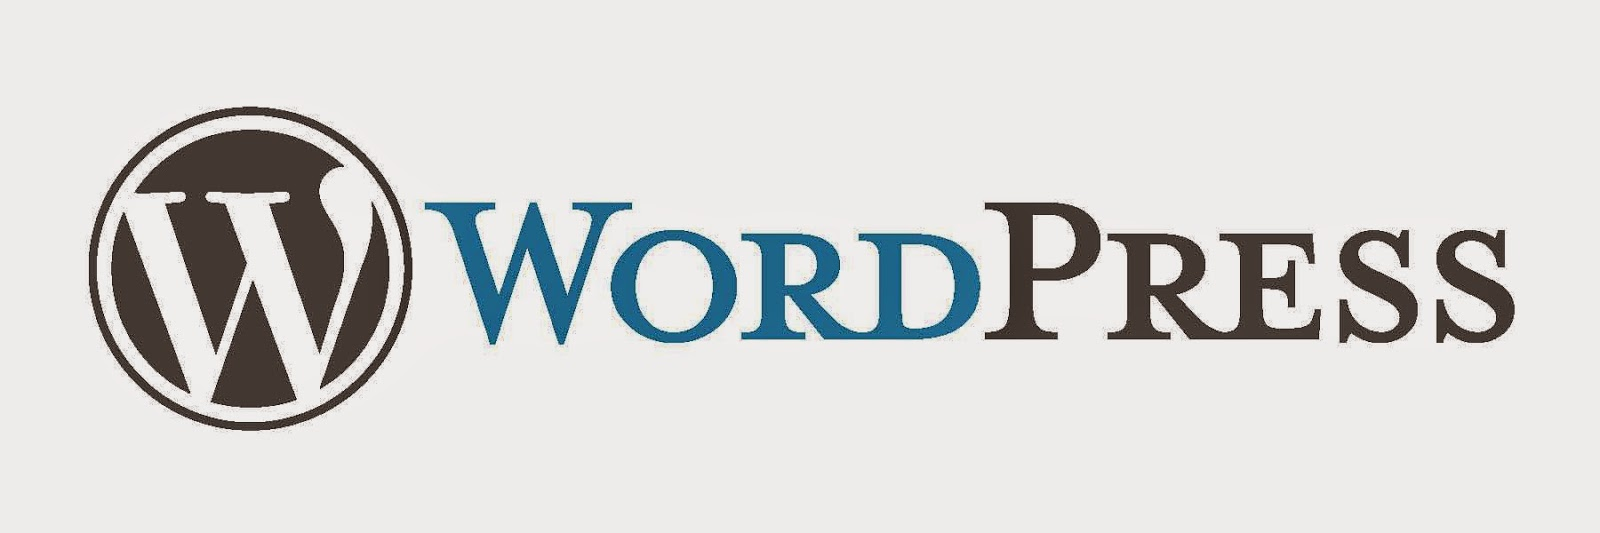 Blogging with WordPress